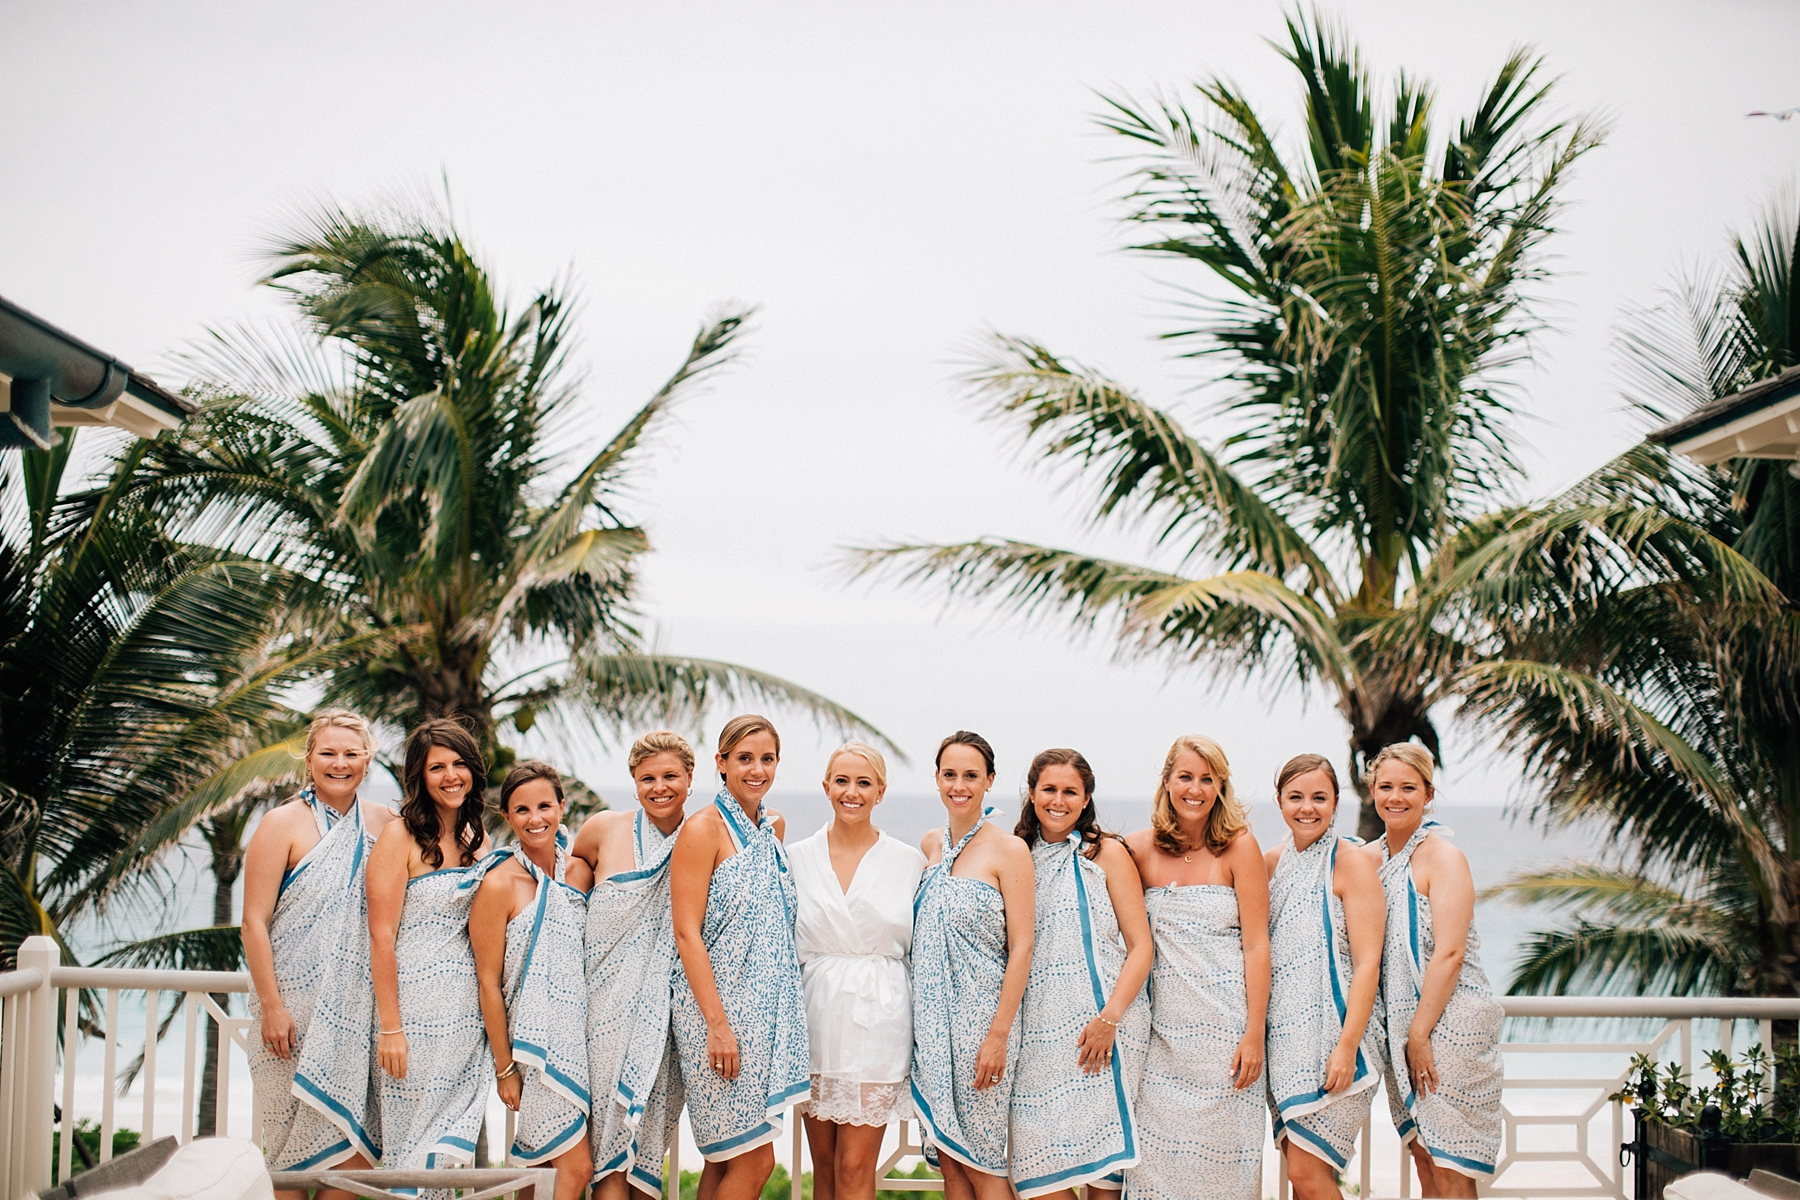 briland-wedding-photographer-harbour-island-bahamas_0005.jpg